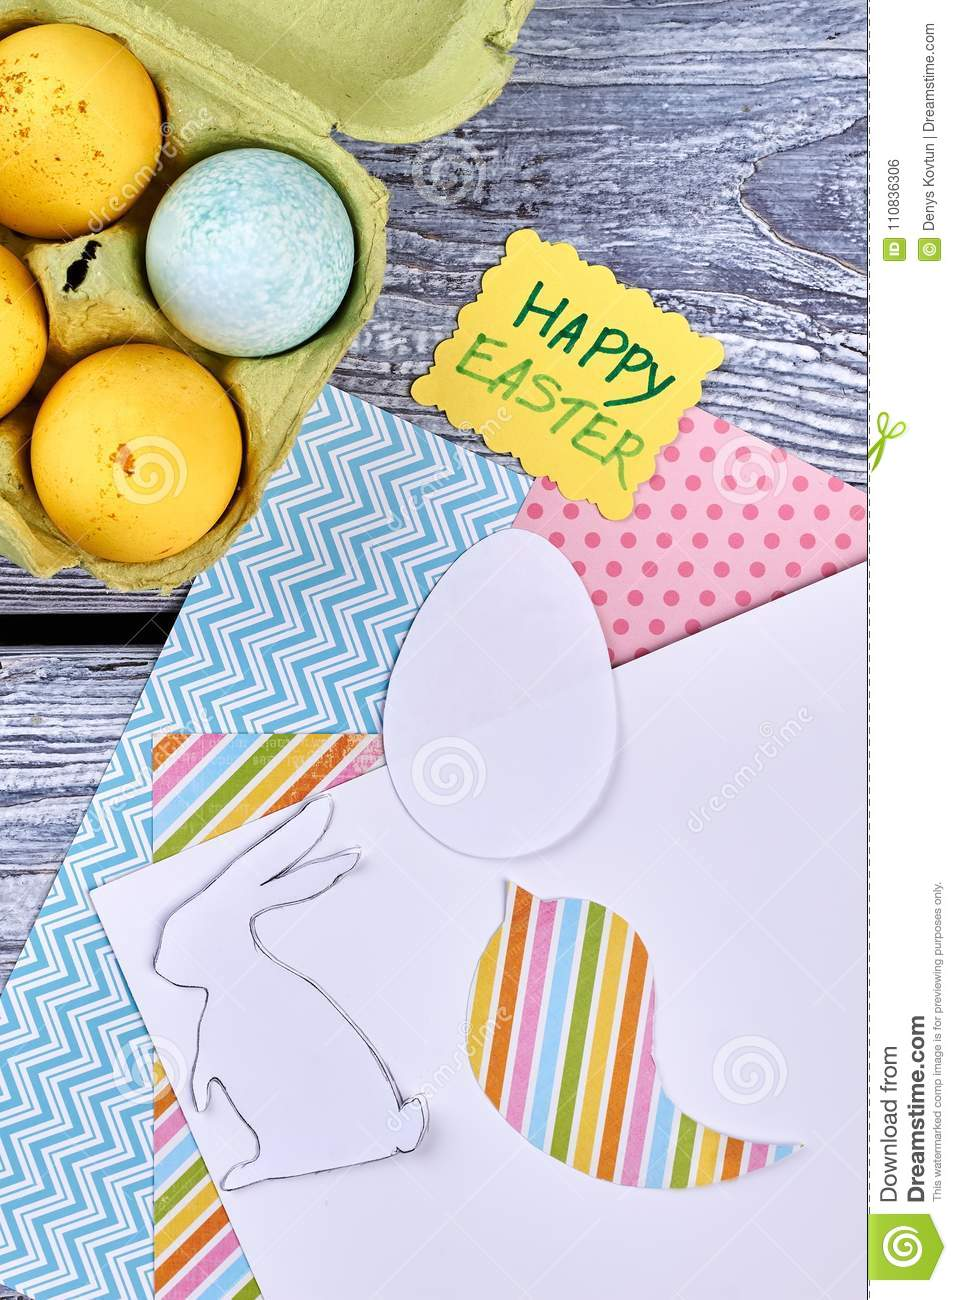 Patterned Paper And Easter Eggs Stock Photo Image Of Bunny